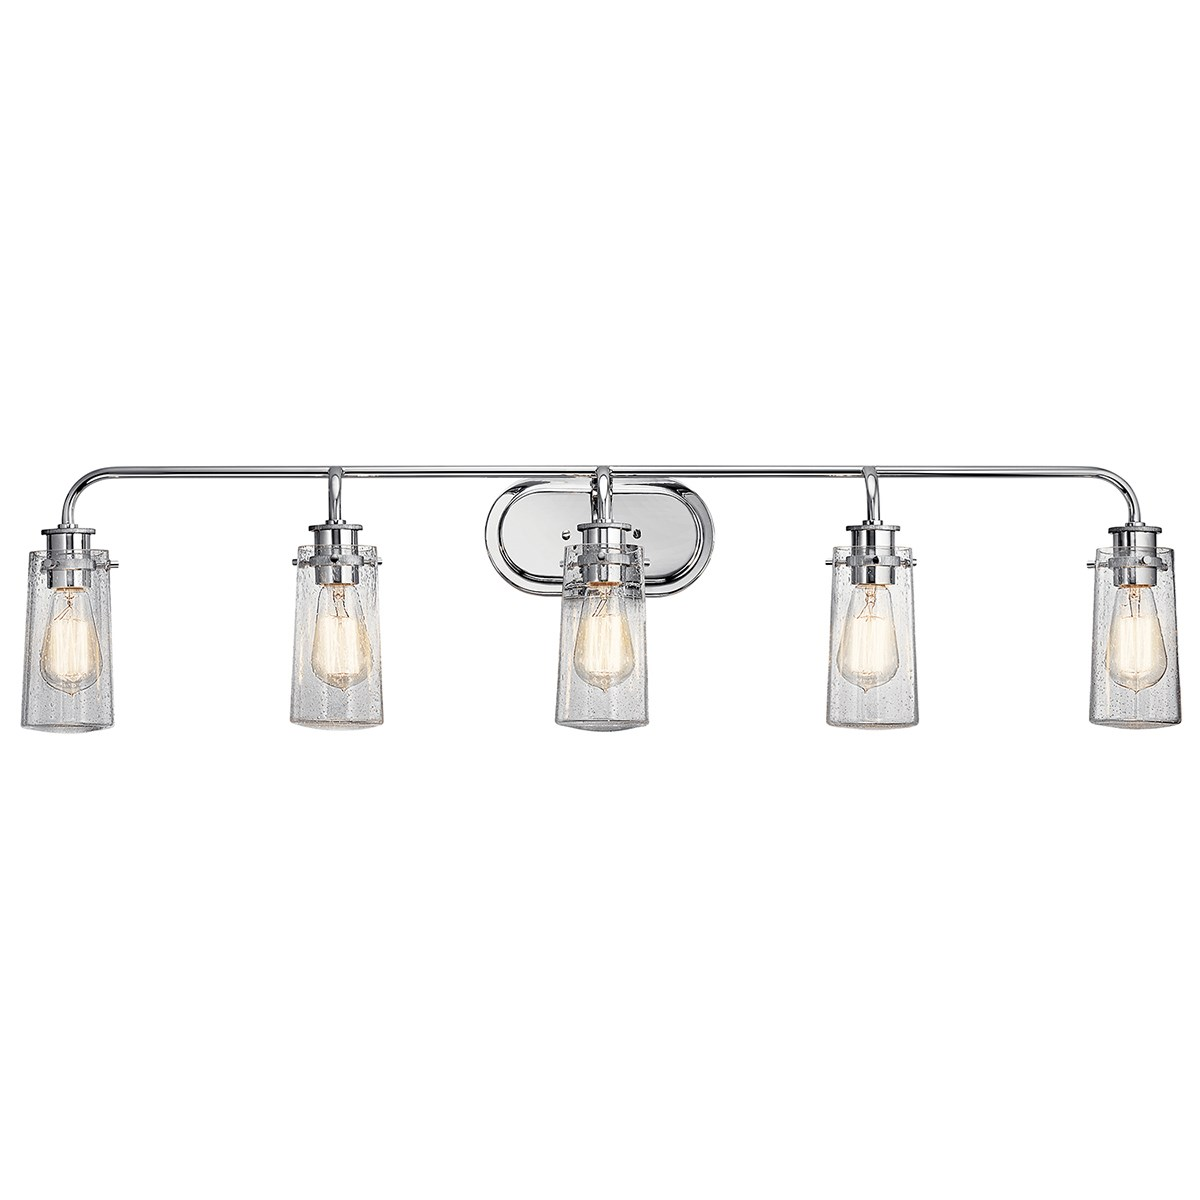 Braelyn 5 Light Vanity Light Chrome